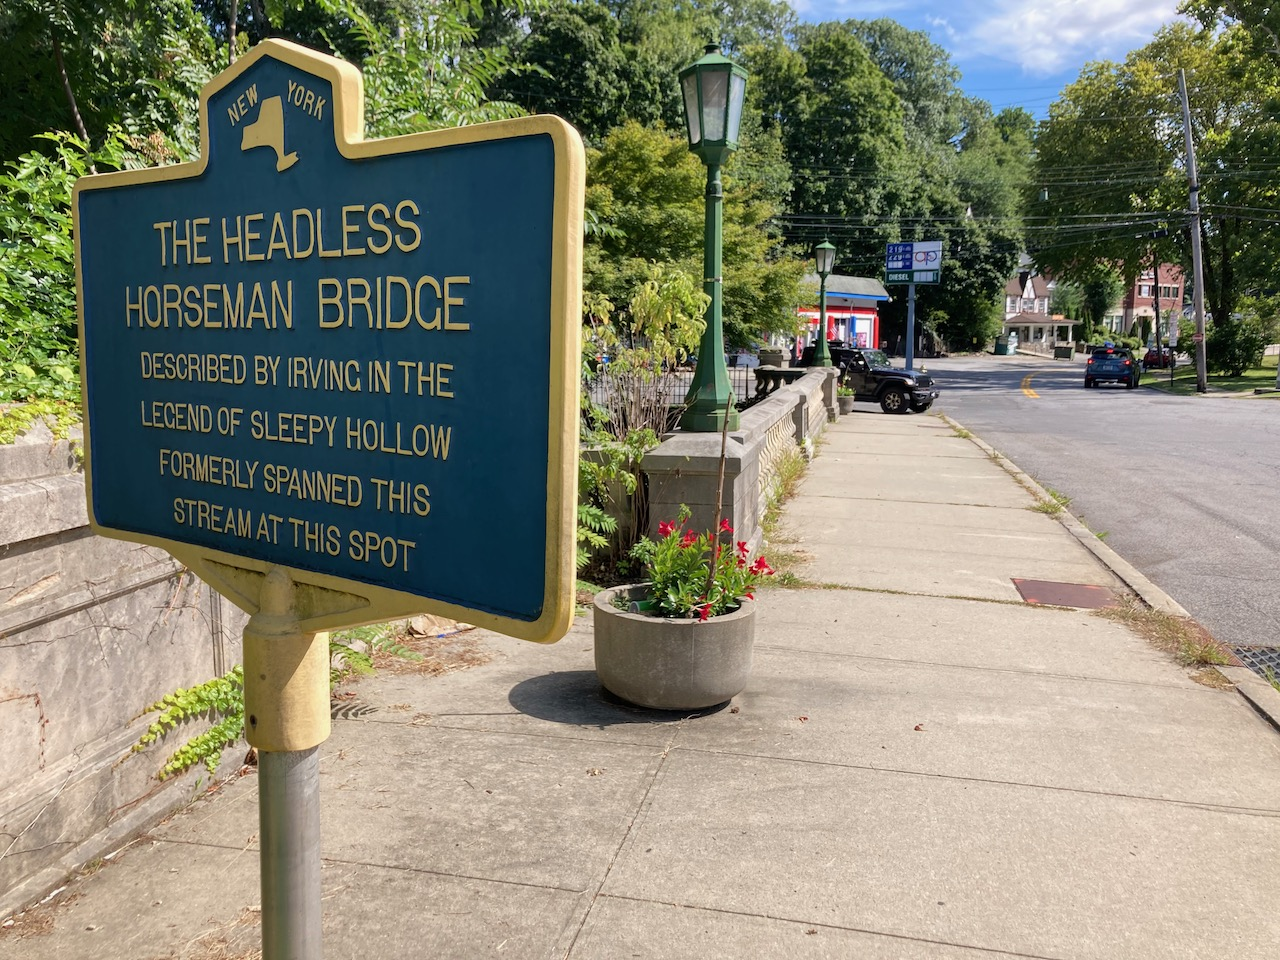 Sign that read THE HEADLESS HORSEMAN BRIDGE DESCRIBED BY IRVING IN THE LEGEND OF SLEEPY HOLLOW FORMERLY SPANNED THIS STREAM AT THIS SPOT.